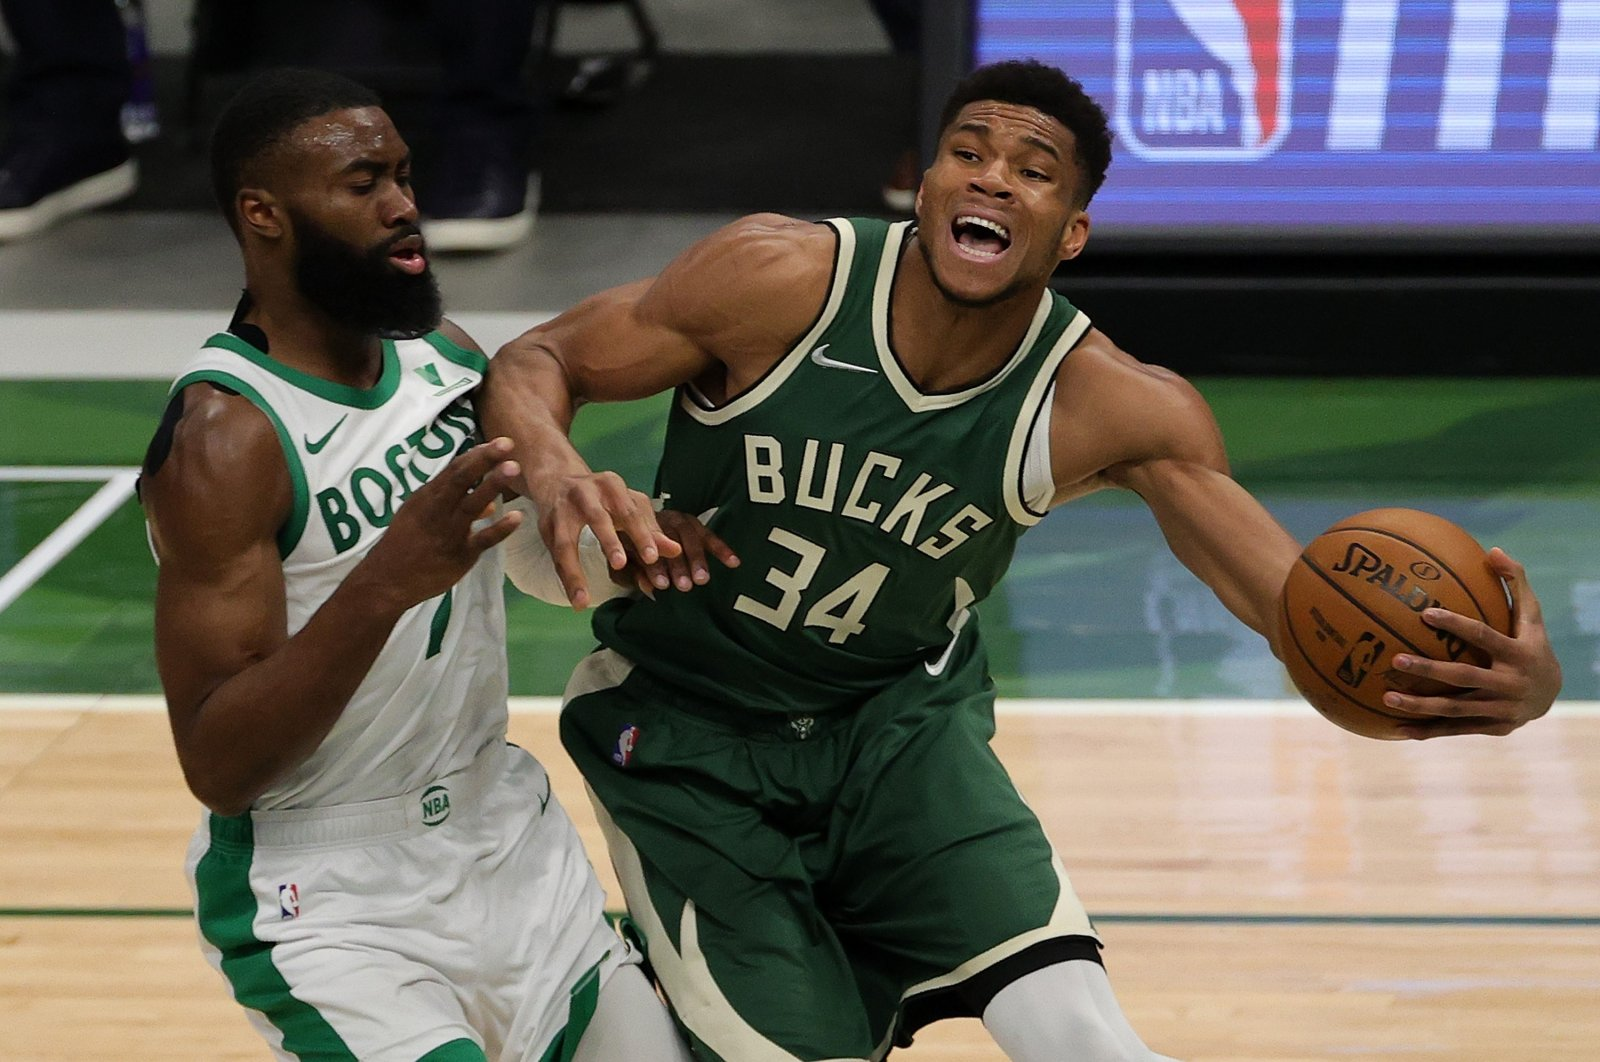 Milwaukee Bucks' Giannis Antetokounmpo (R) is defended by Boston Celtics' Jaylen Brown (L) during an NBA game at Fiserv Forum, in Milwaukee, Wisconsin, March 24, 2021. (AFP Photo)